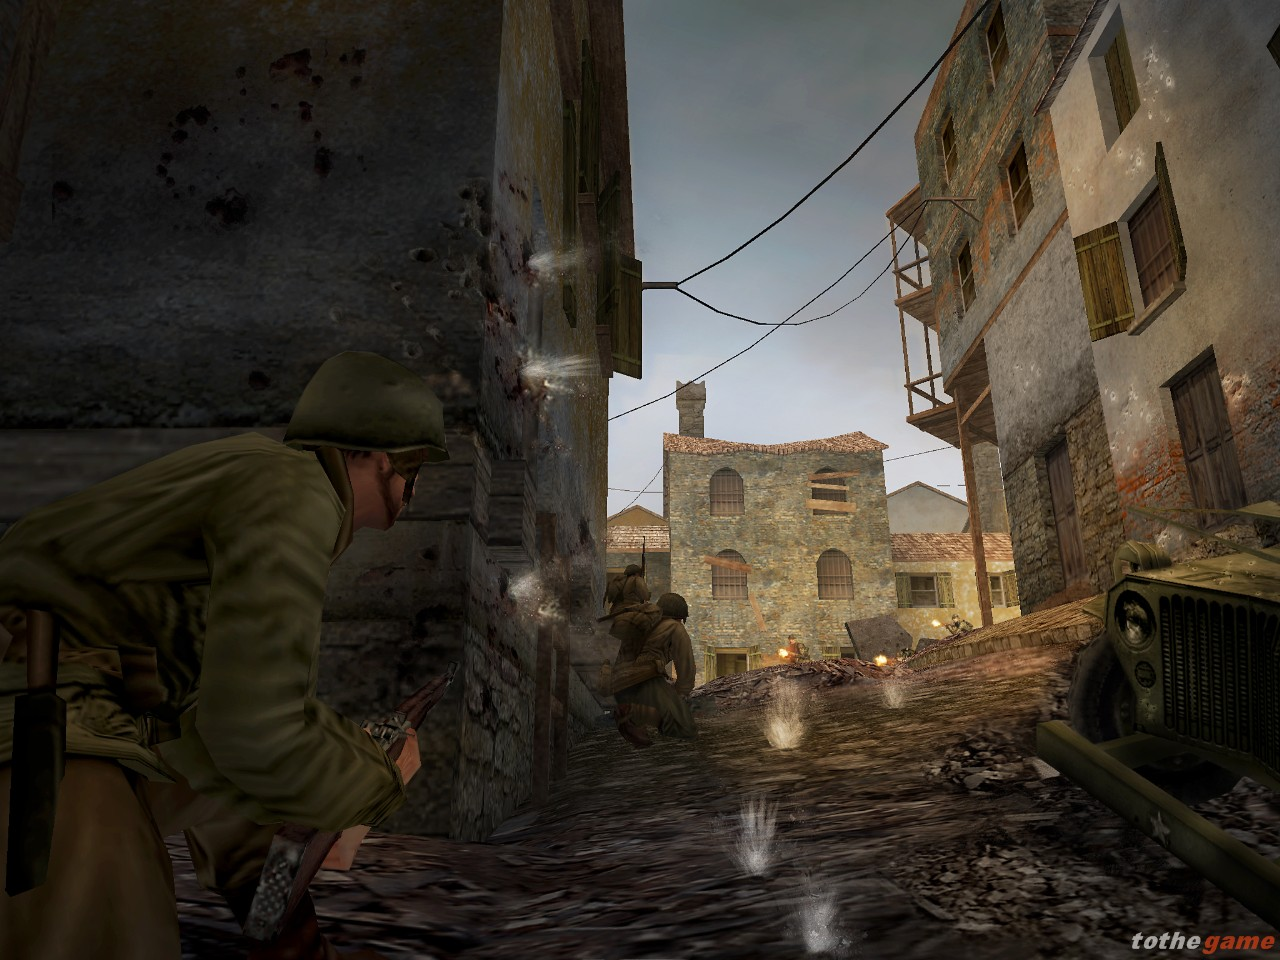 Historia: Call of Duty 2003 - 2013 [megapost]